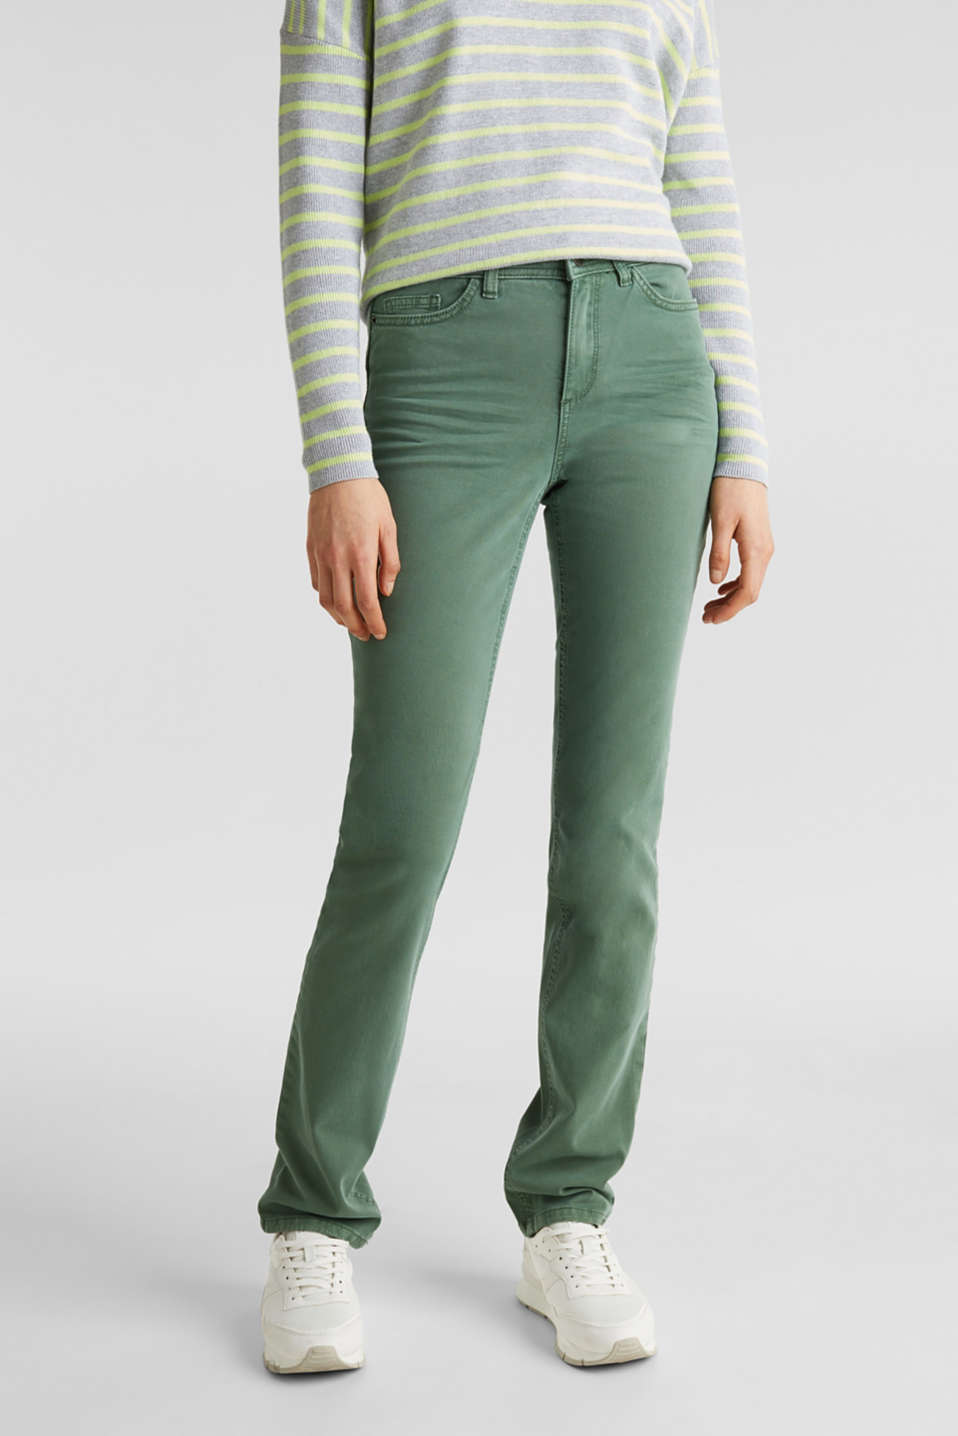 Washed-effect stretch trousers, KHAKI GREEN, detail image number 0